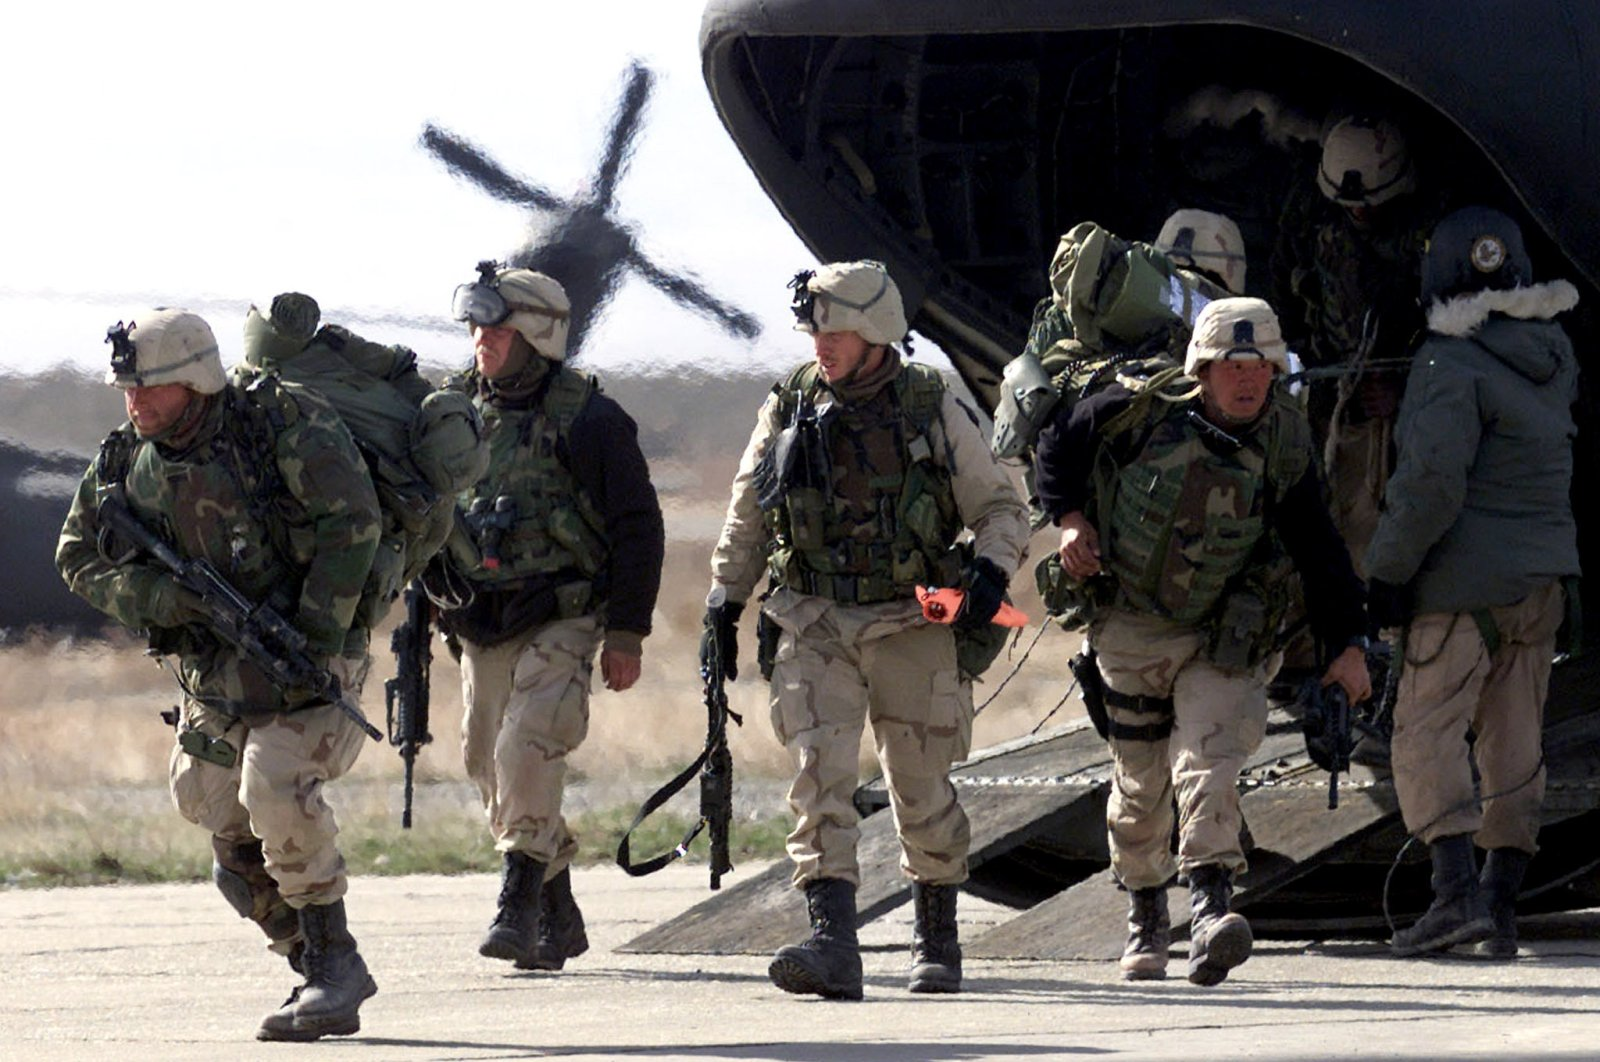 U.S. Army soldiers from the 101 Airborne in full battle gear disembark from a Chinook helicopter as they return to the Bagram base from a week of fighting in the Shahi Kot mountains in eastern Afghanistan, March 11, 2002. (Reuters)